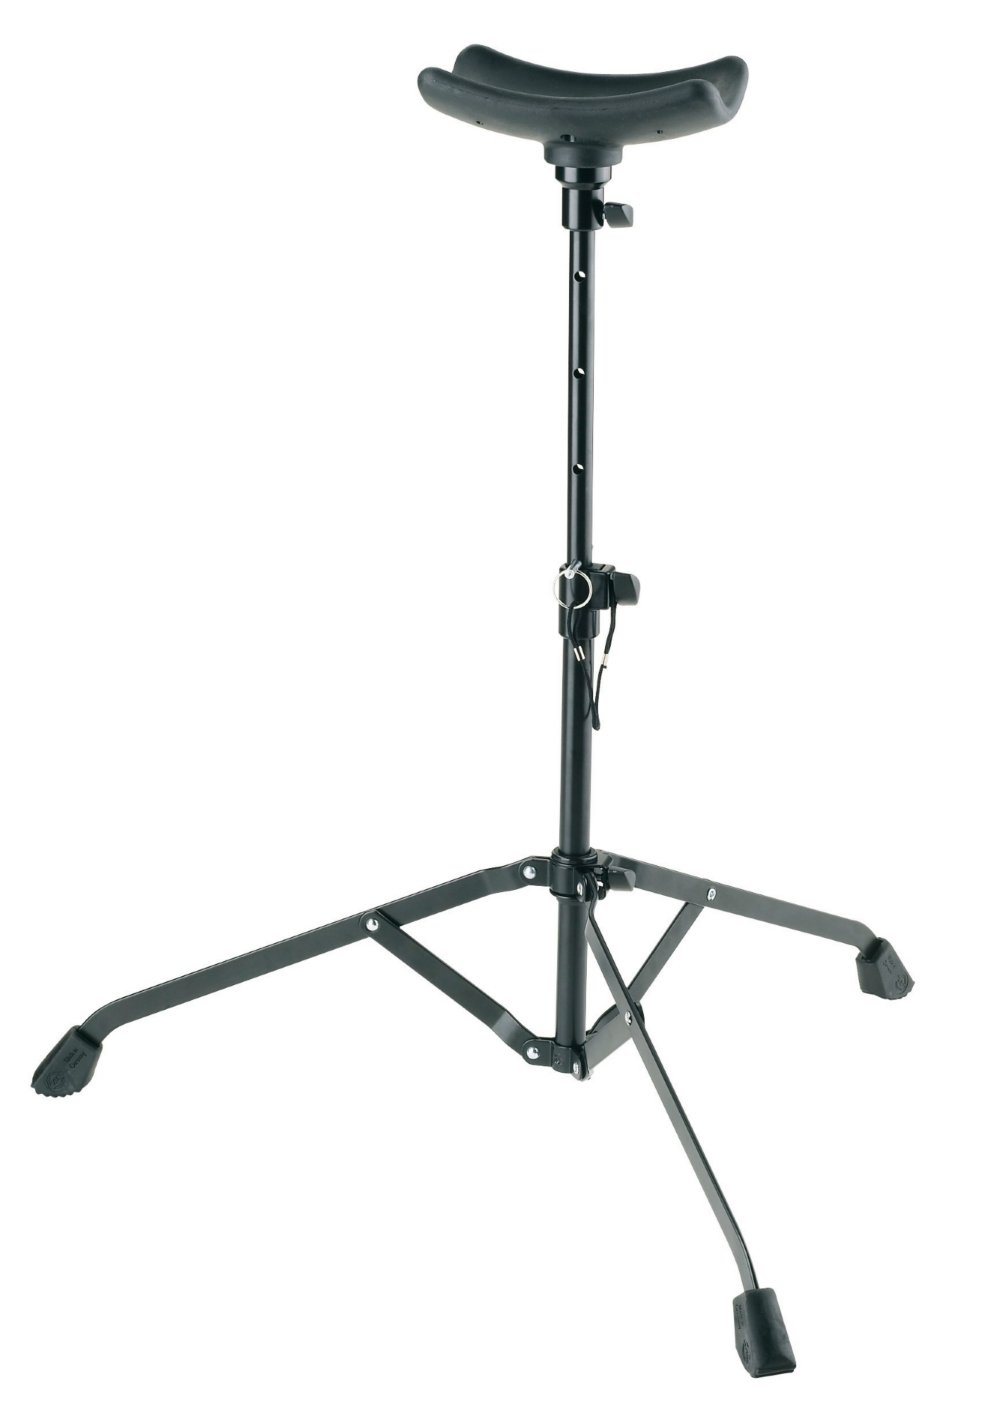 K&M Stands 14950-000-55 Tuba Performer Stand 14950.000.55